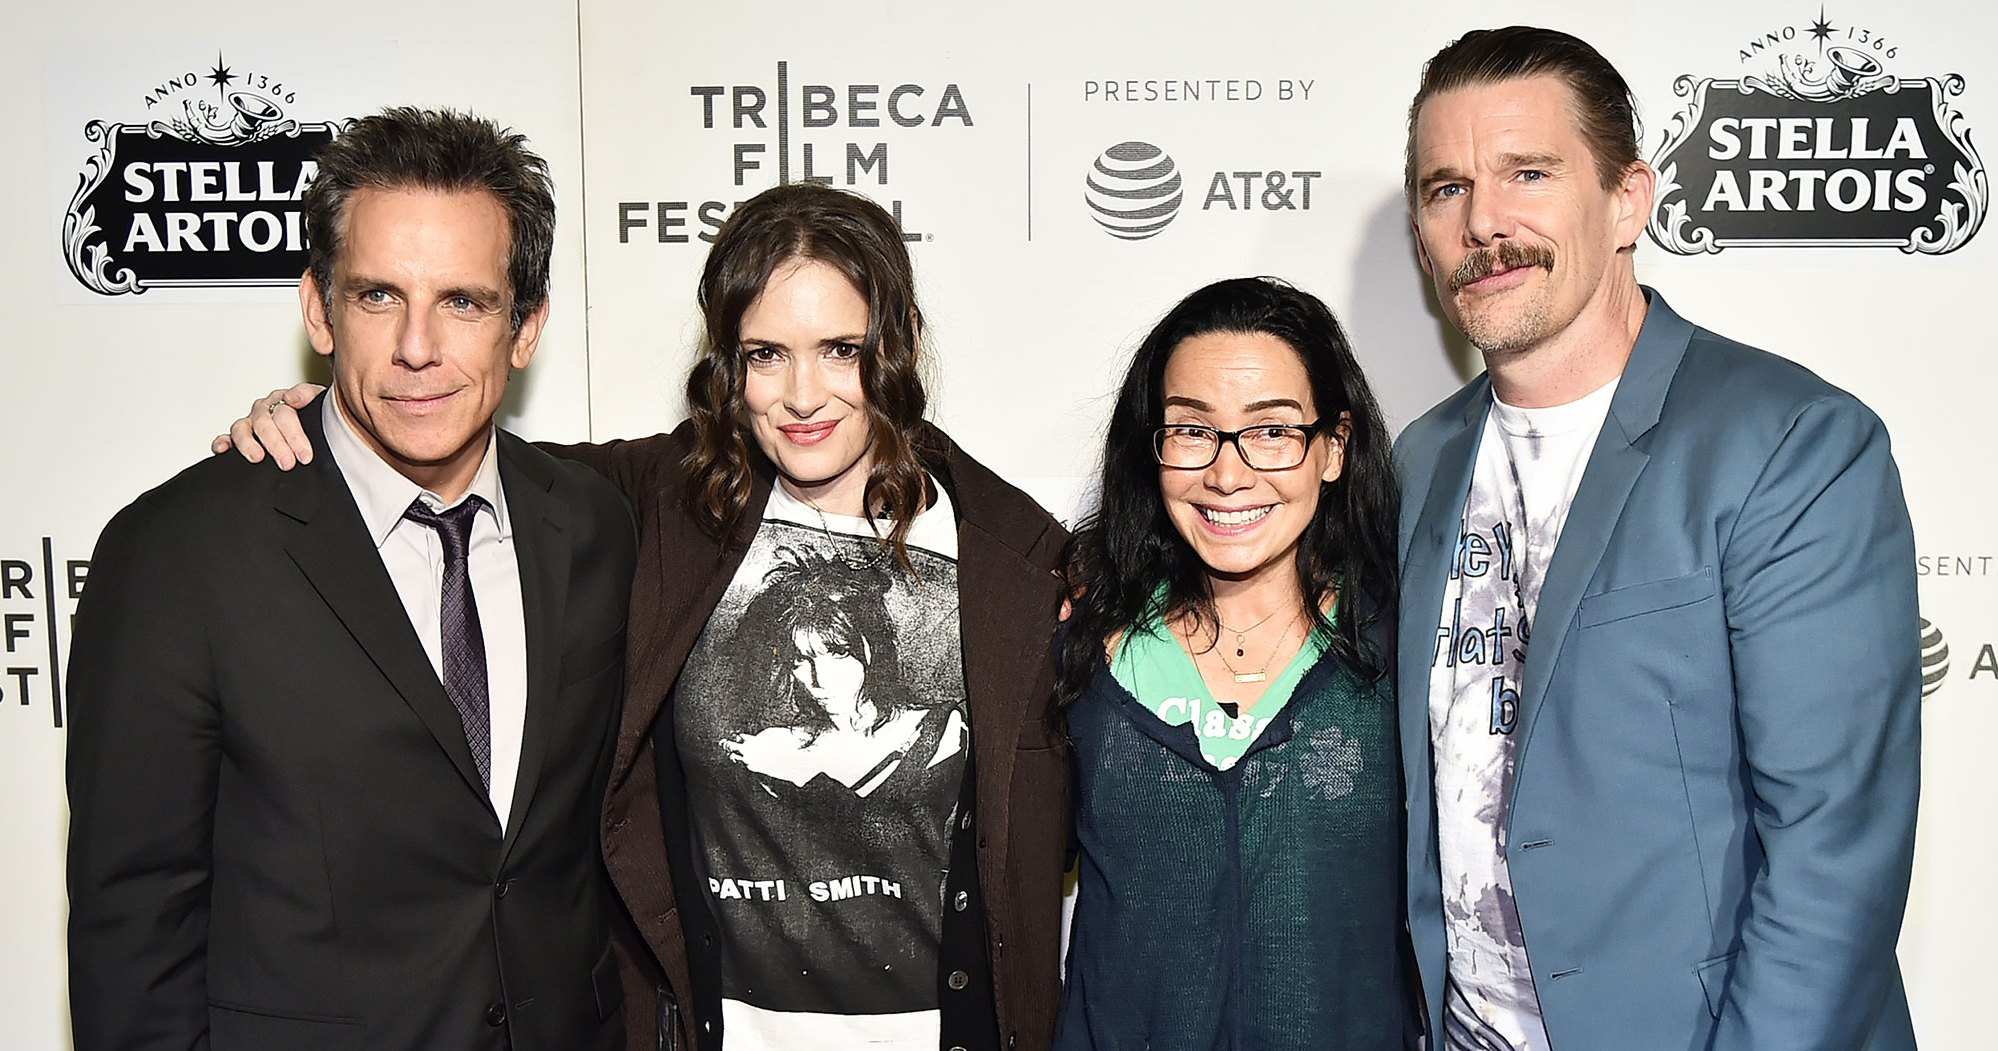 Winona Ryder, Ben Stiller and Ethan Hawke Reunite for 'Reality Bites' Screening